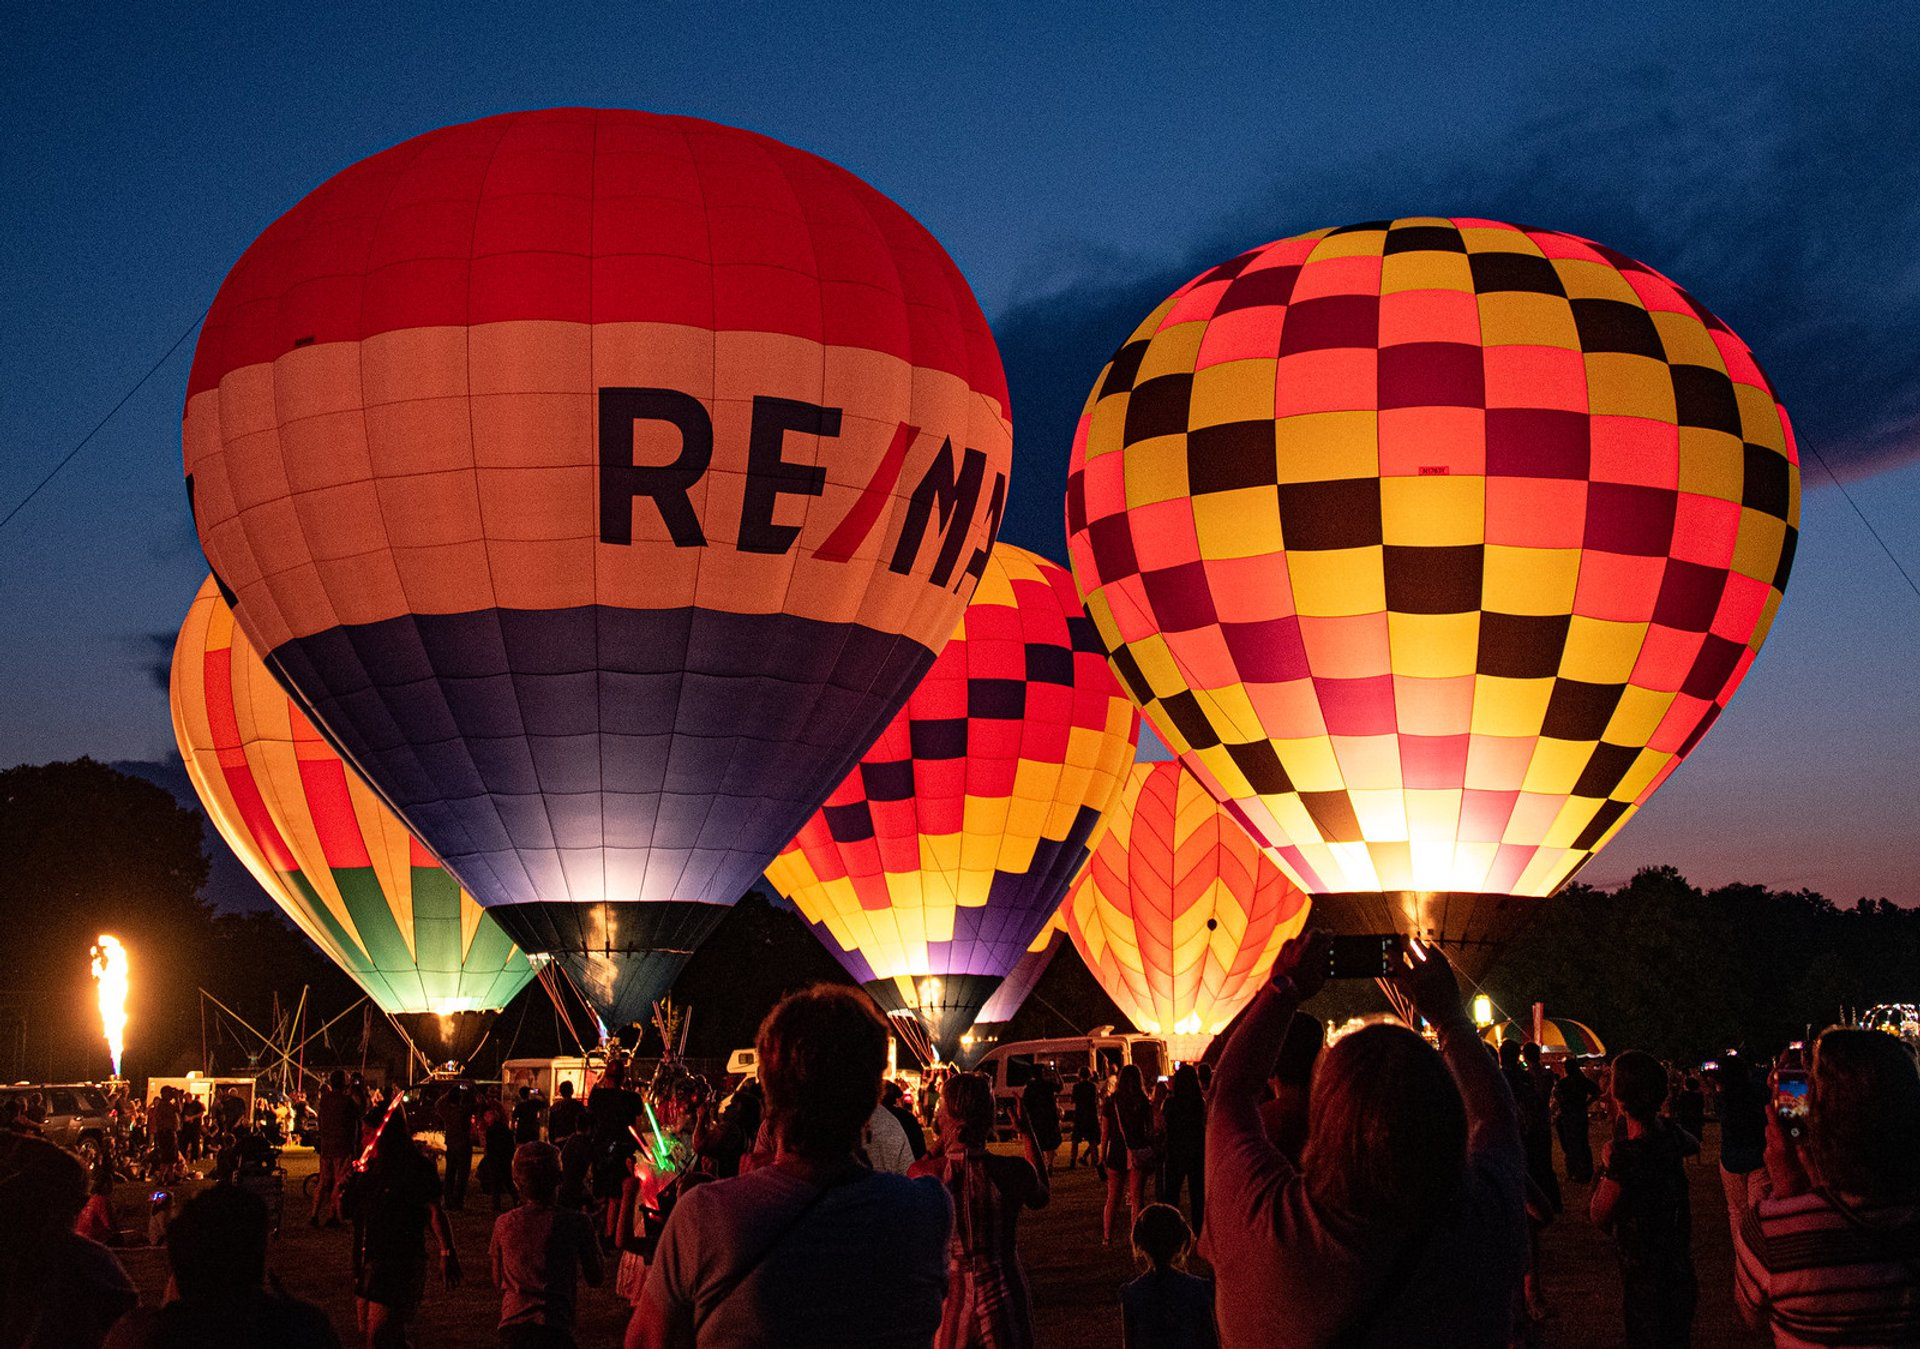 Suncook Valley Rotary Hot Air Balloon Rally in New Hampshire 2020 - Best Time